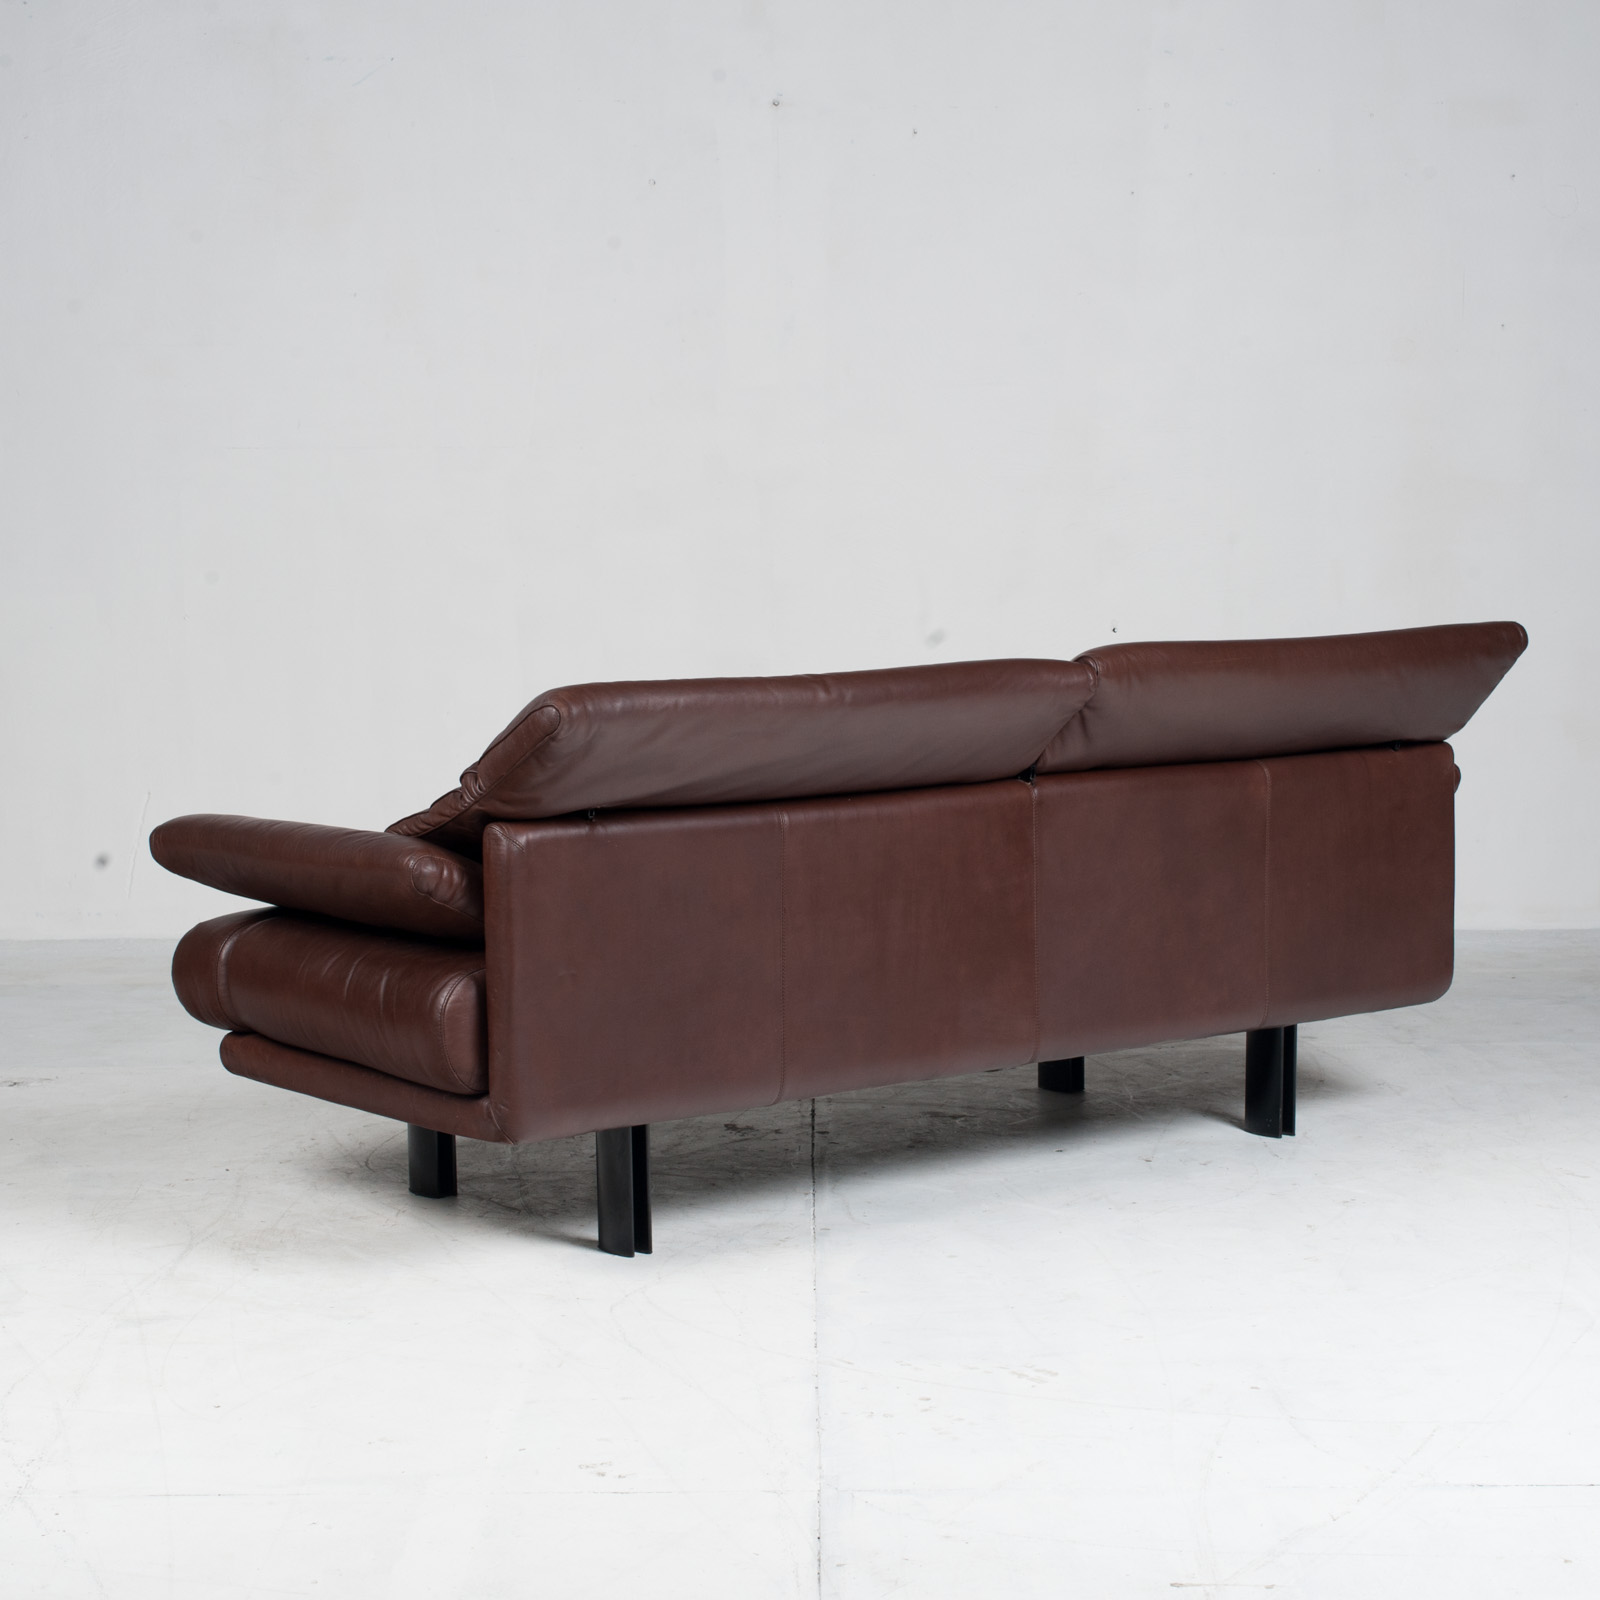 Alanda Sofa By Paolo Piva For B&b Italia In Burgundy Leather 1980s Italy 16